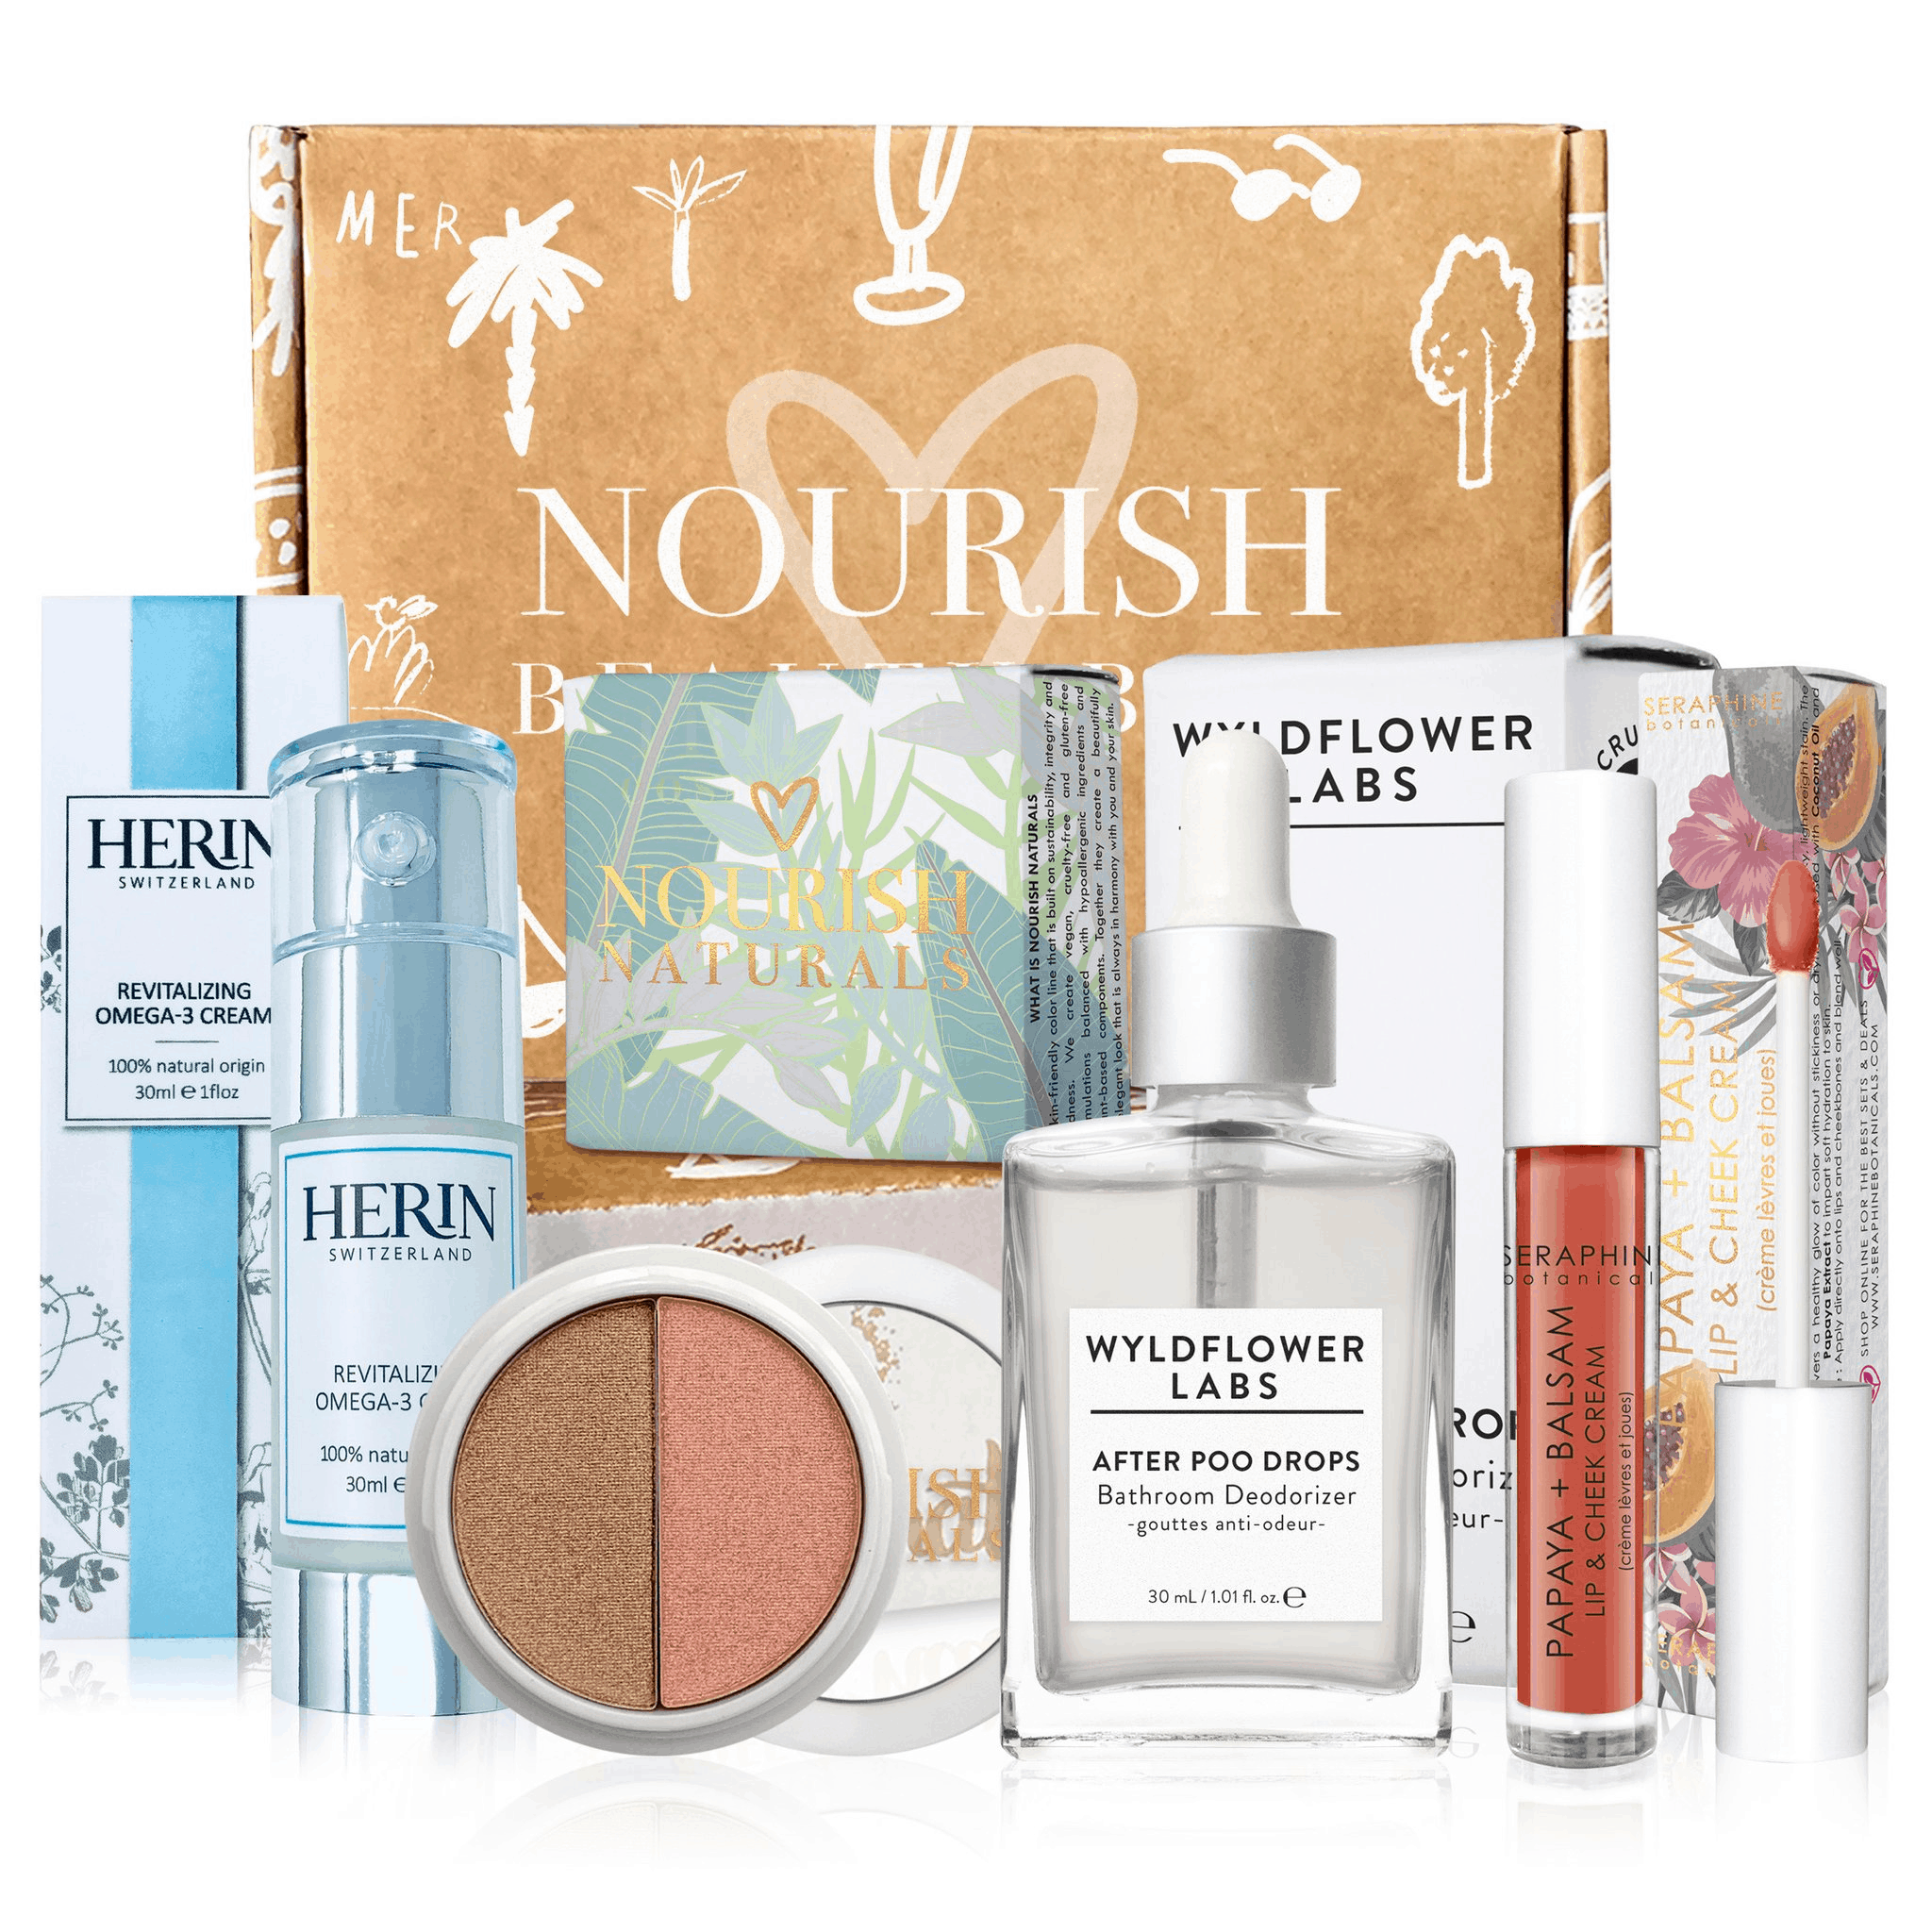 Nourish Beauty Box Coupon: Get 15% Off Your First Box!